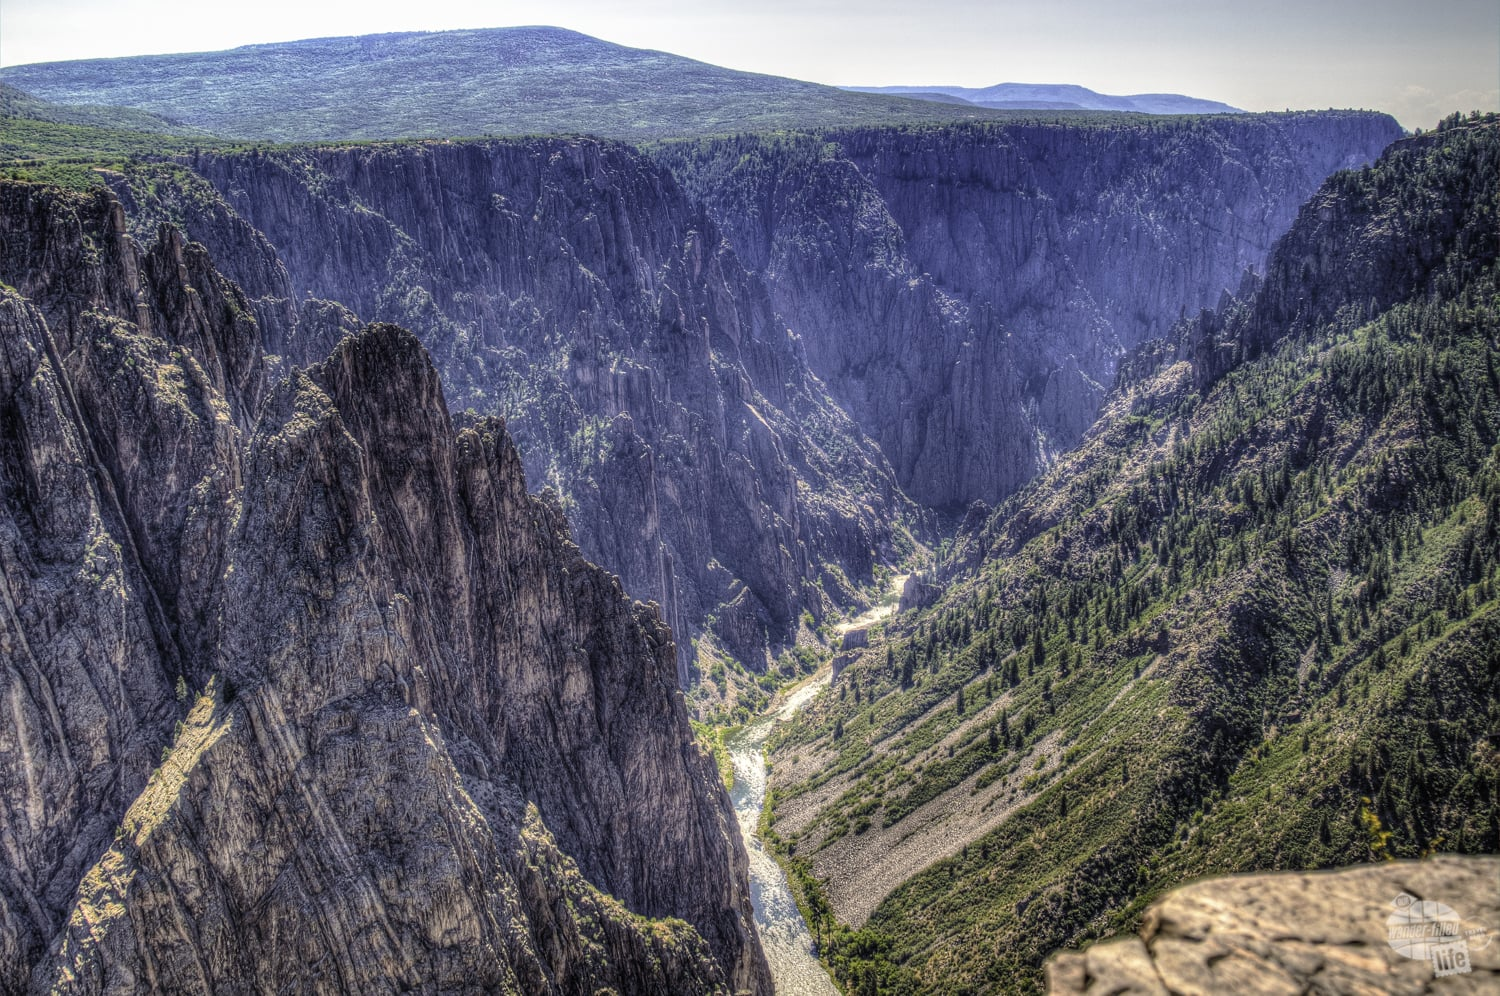 The very steep walls of the Black Canyon.